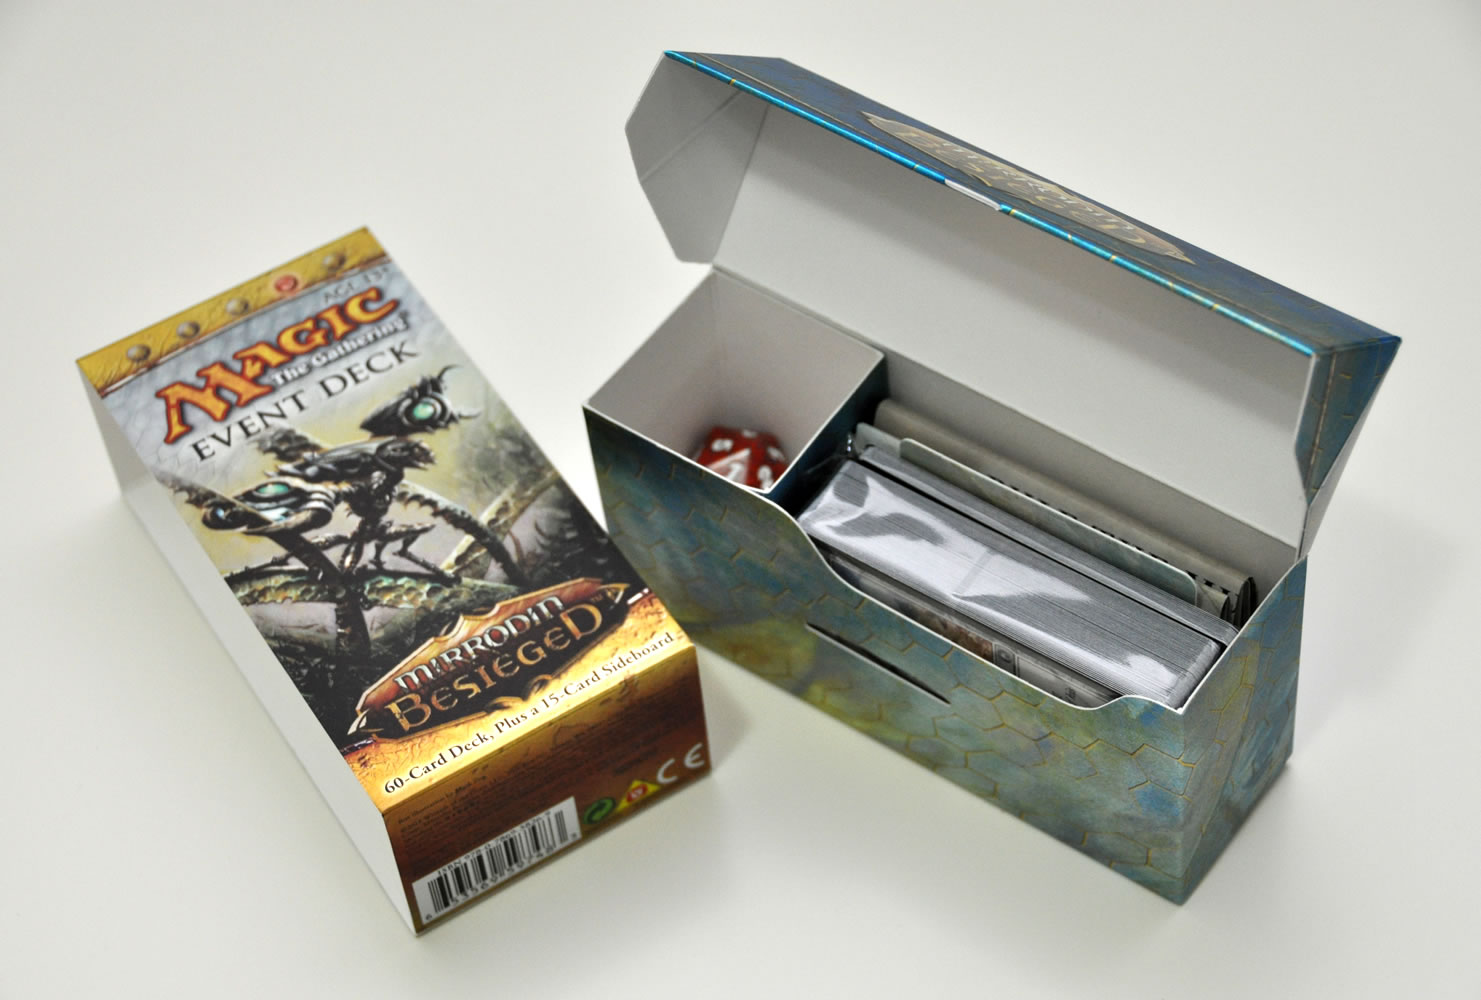 Open Event Deck deck box.